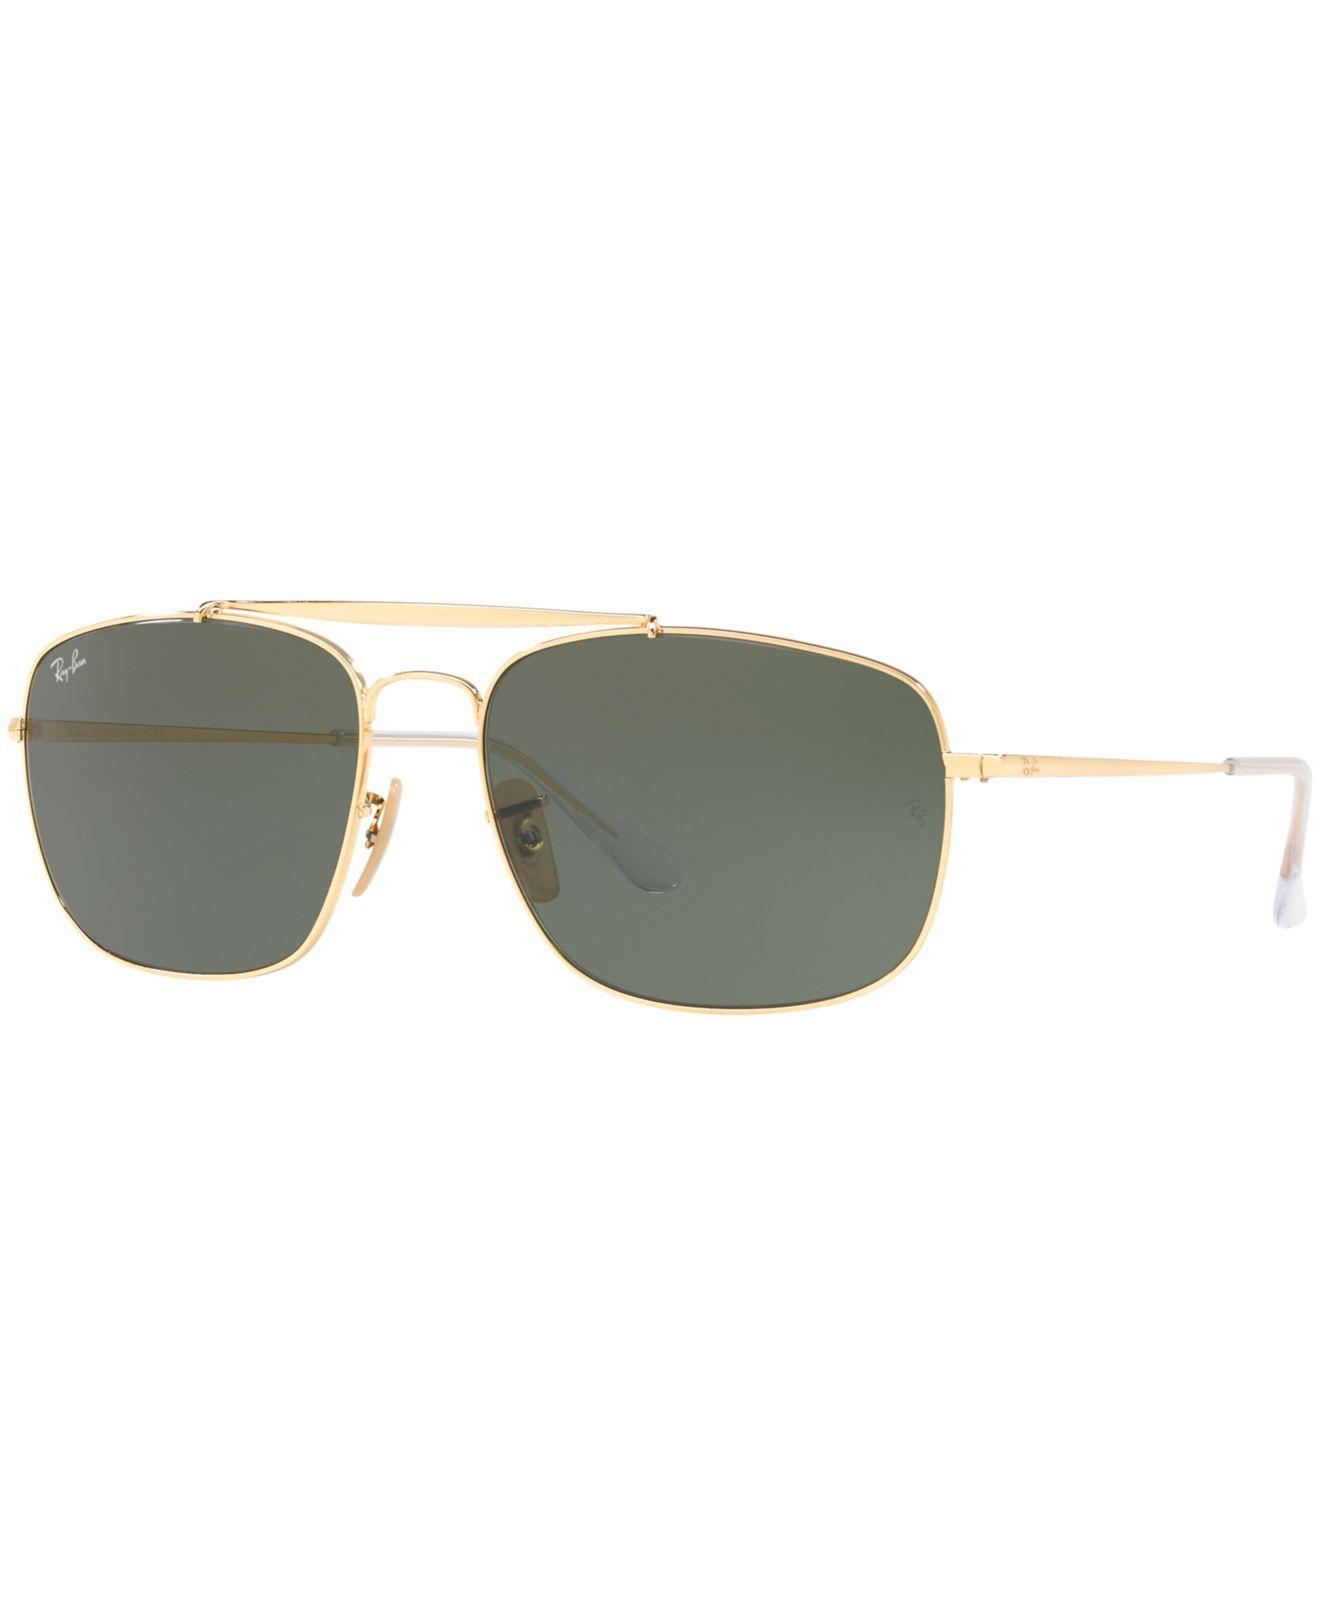 568c2e6ed0b6 Ray-Ban Sunglasses, Rb3560 The Colonel in Green - Lyst